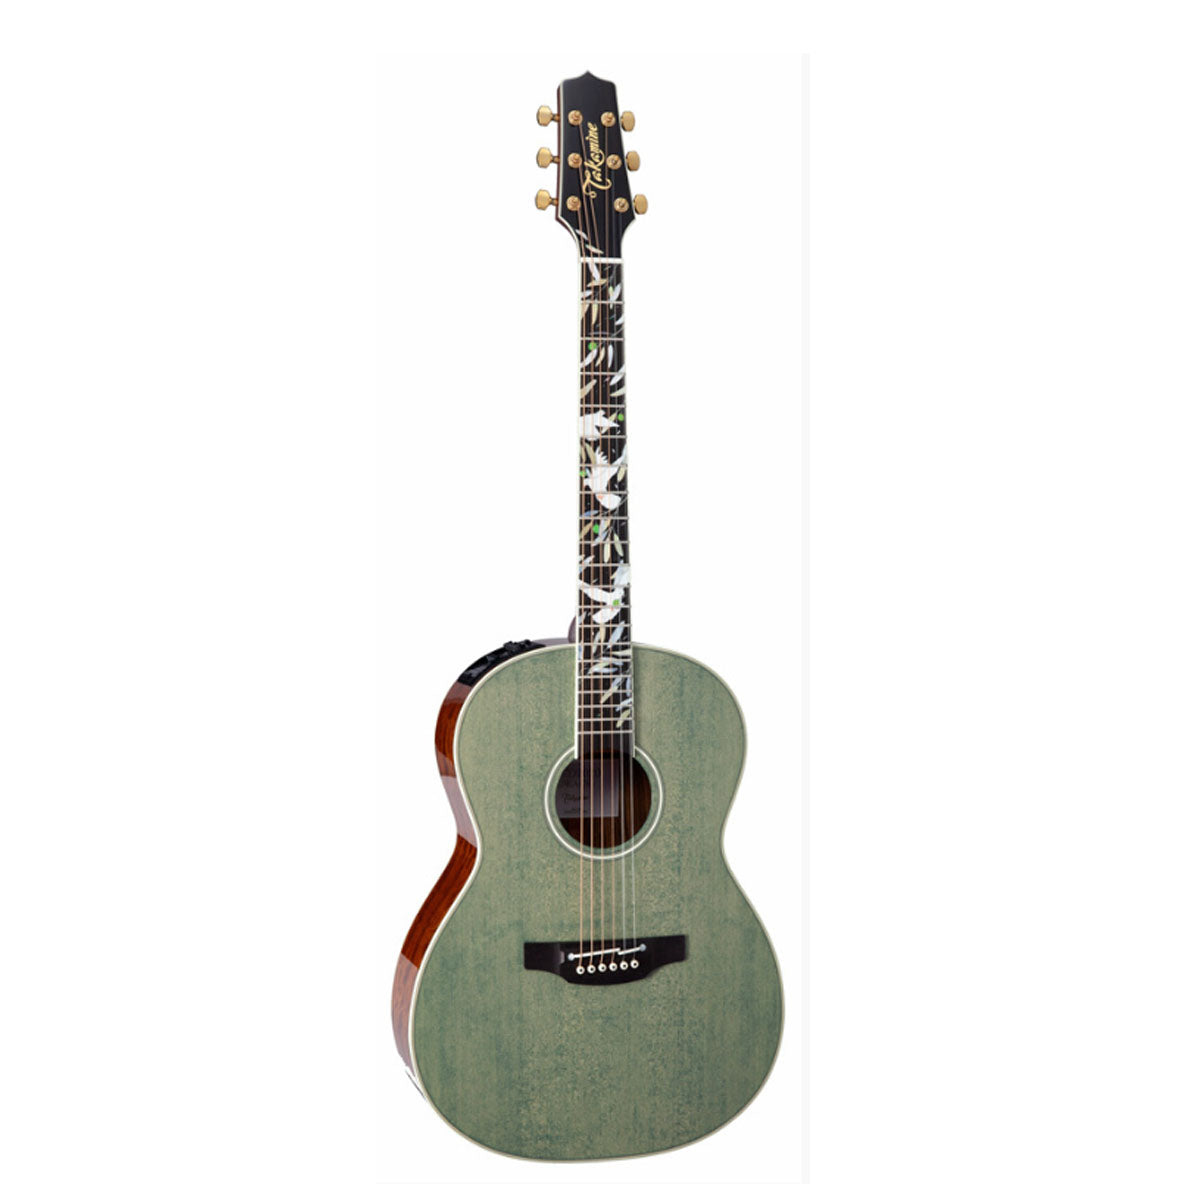 Takamine LTD2020 Peace Acoustic Guitar Limited Edition Foliage Green w/ Pickup